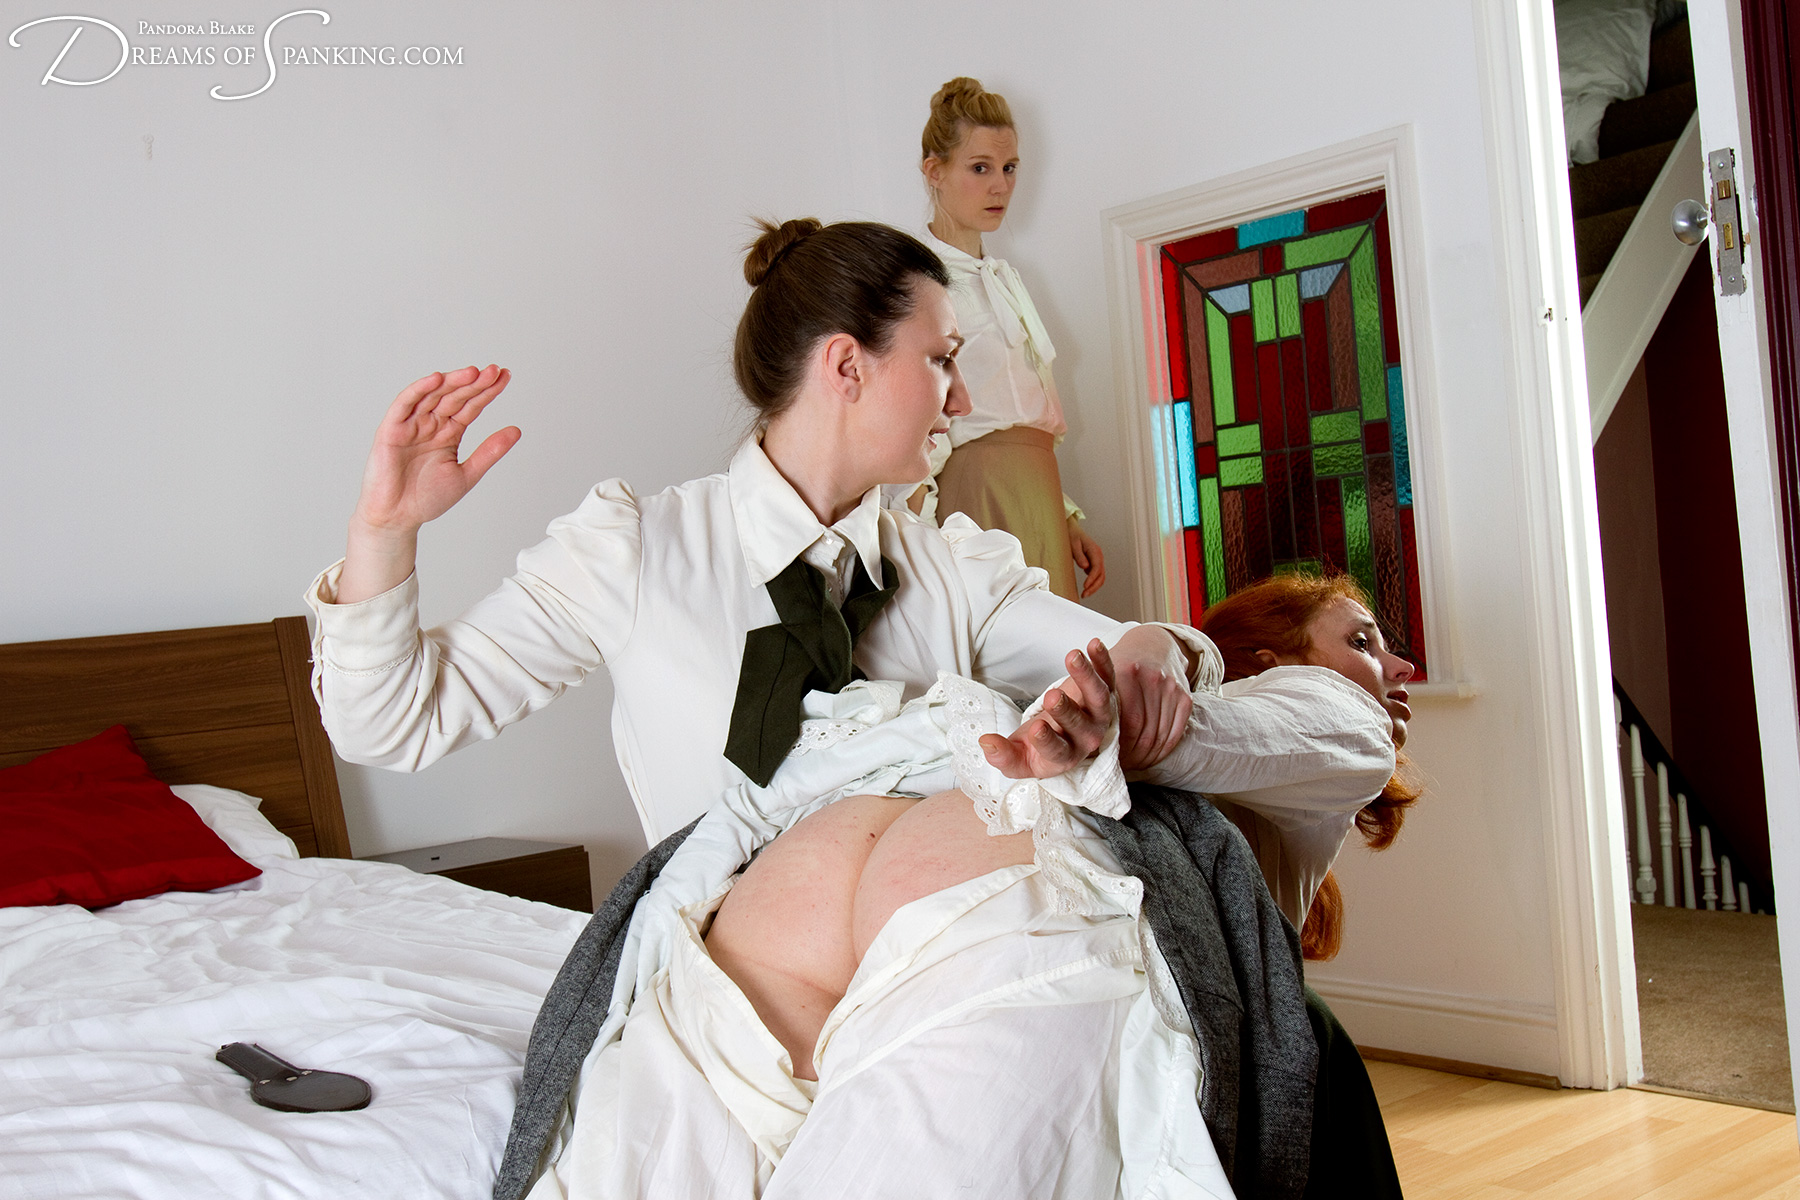 Caroline Grey is spanked and paddled over the knee by her strict Edwardian governess at Dreams of Spanking.